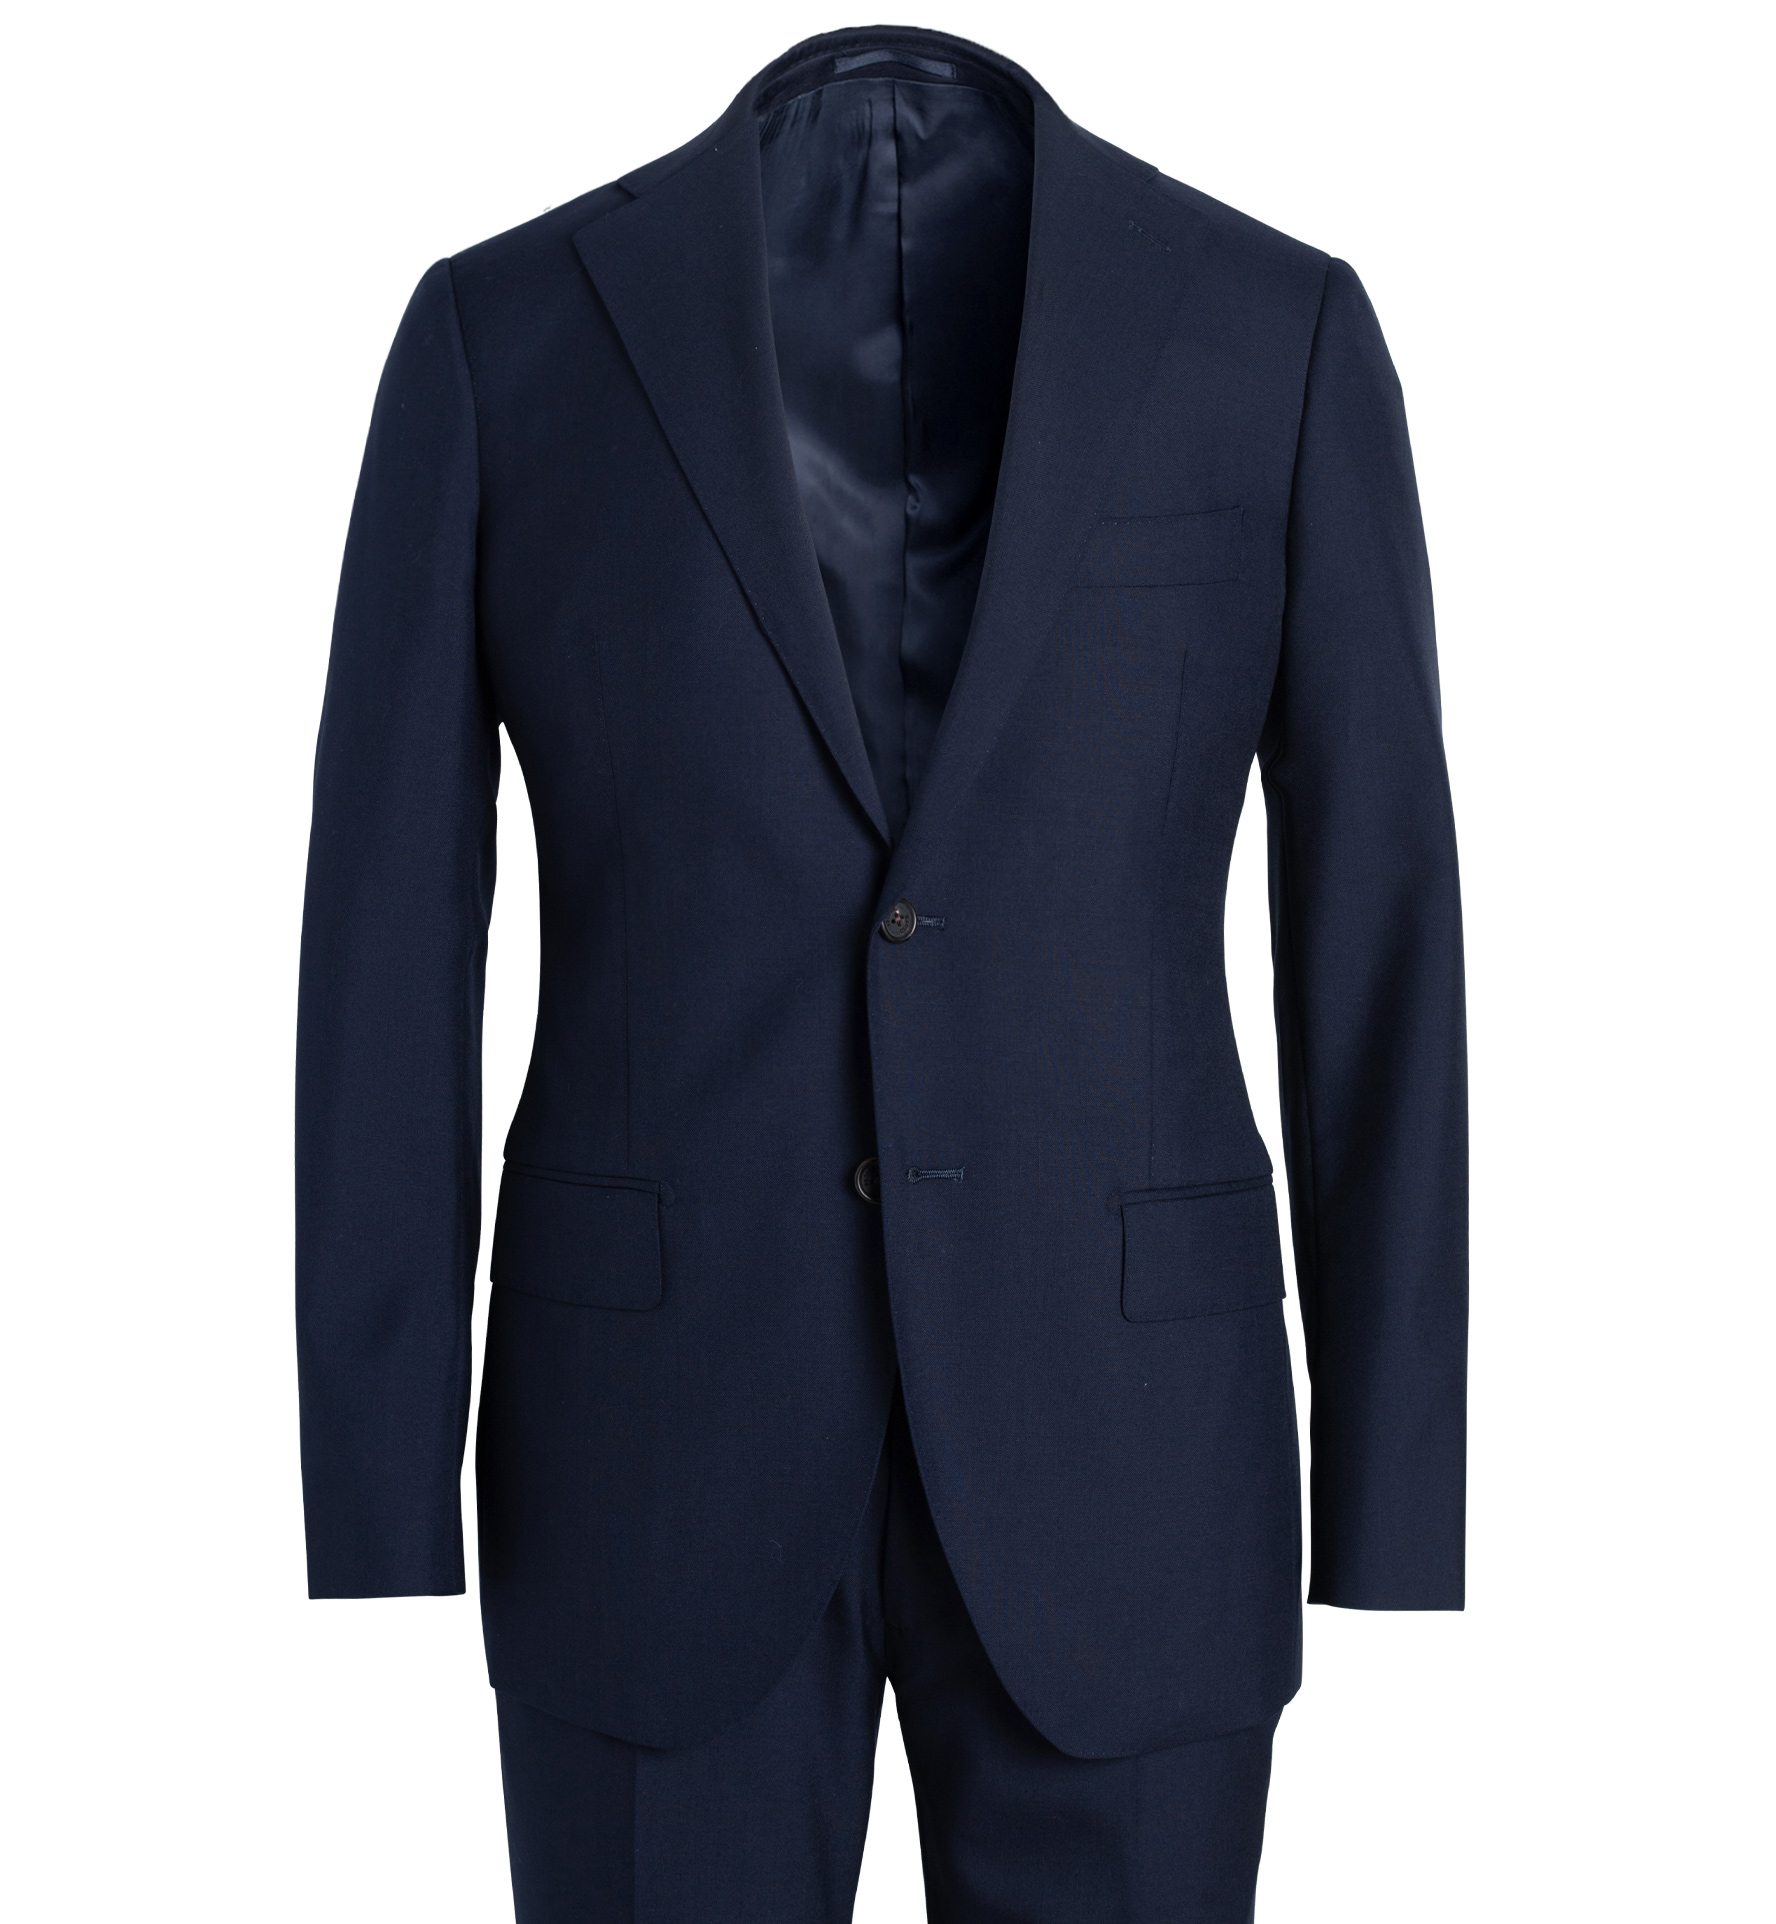 Zoom Image of Allen Navy Tropical Wool Fresco Suit